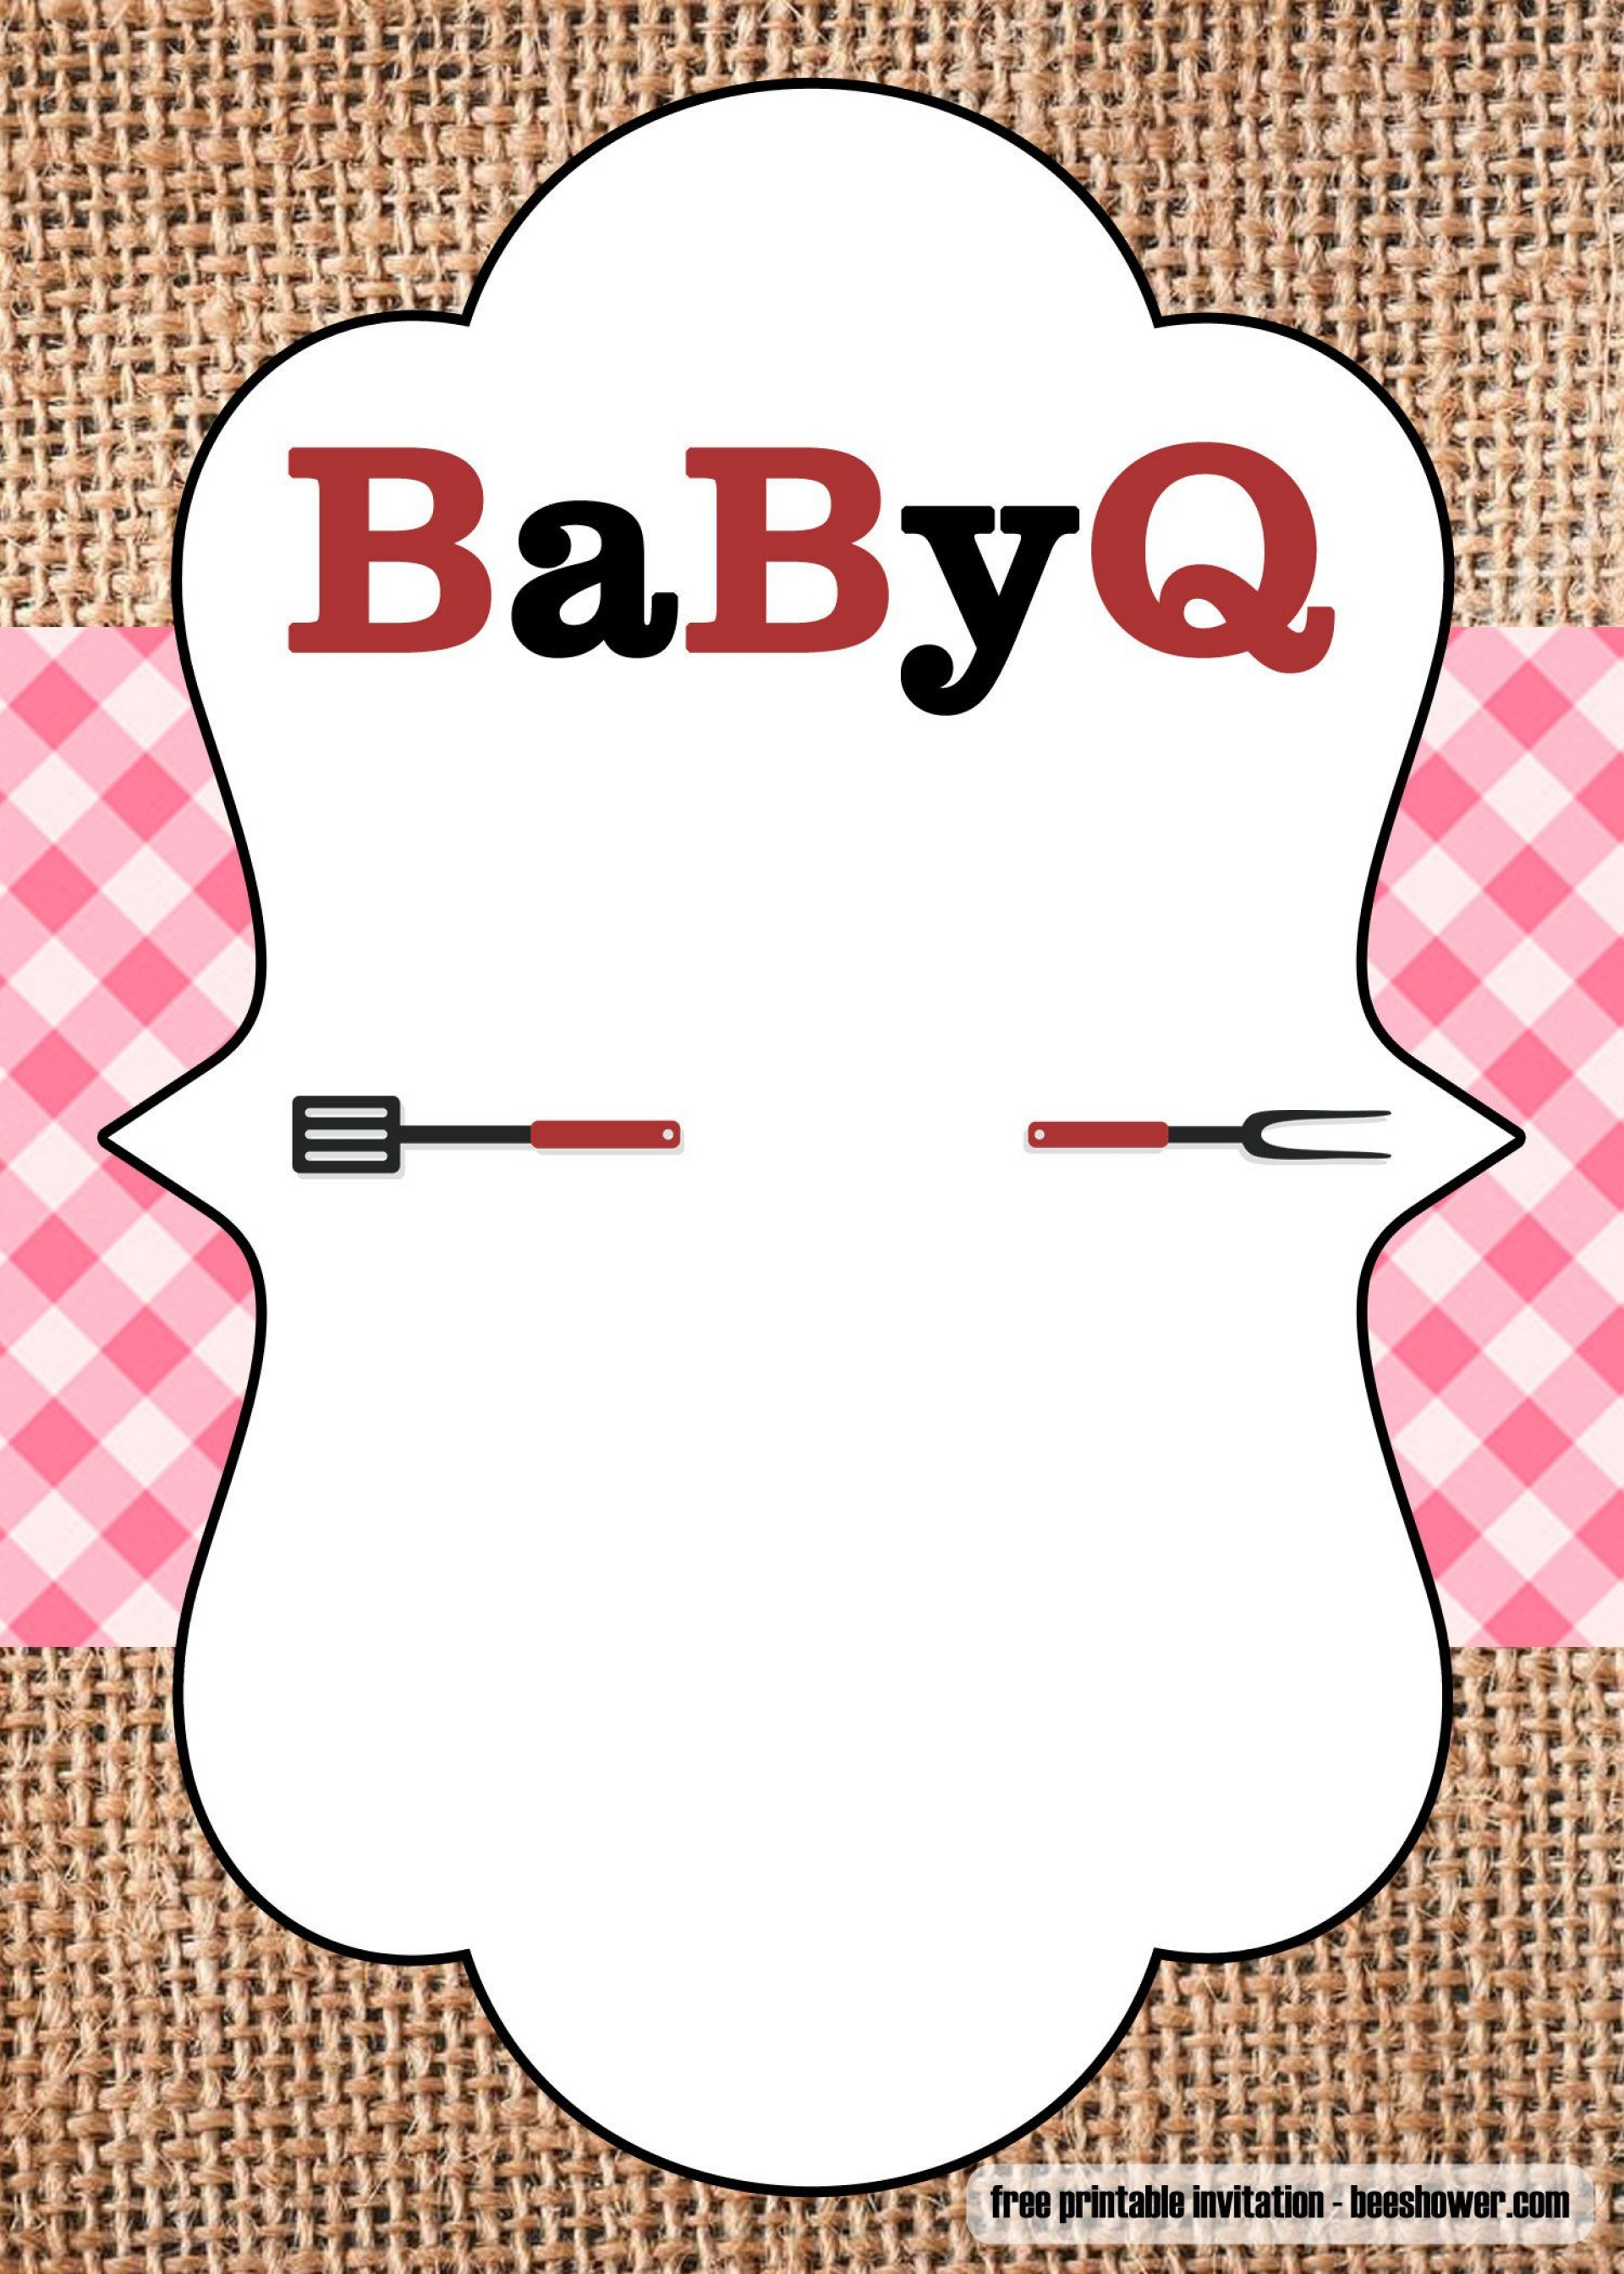 005 Awesome Baby Shower Template Free Printable Picture  Superhero Invitation For A Boy Diaper1920